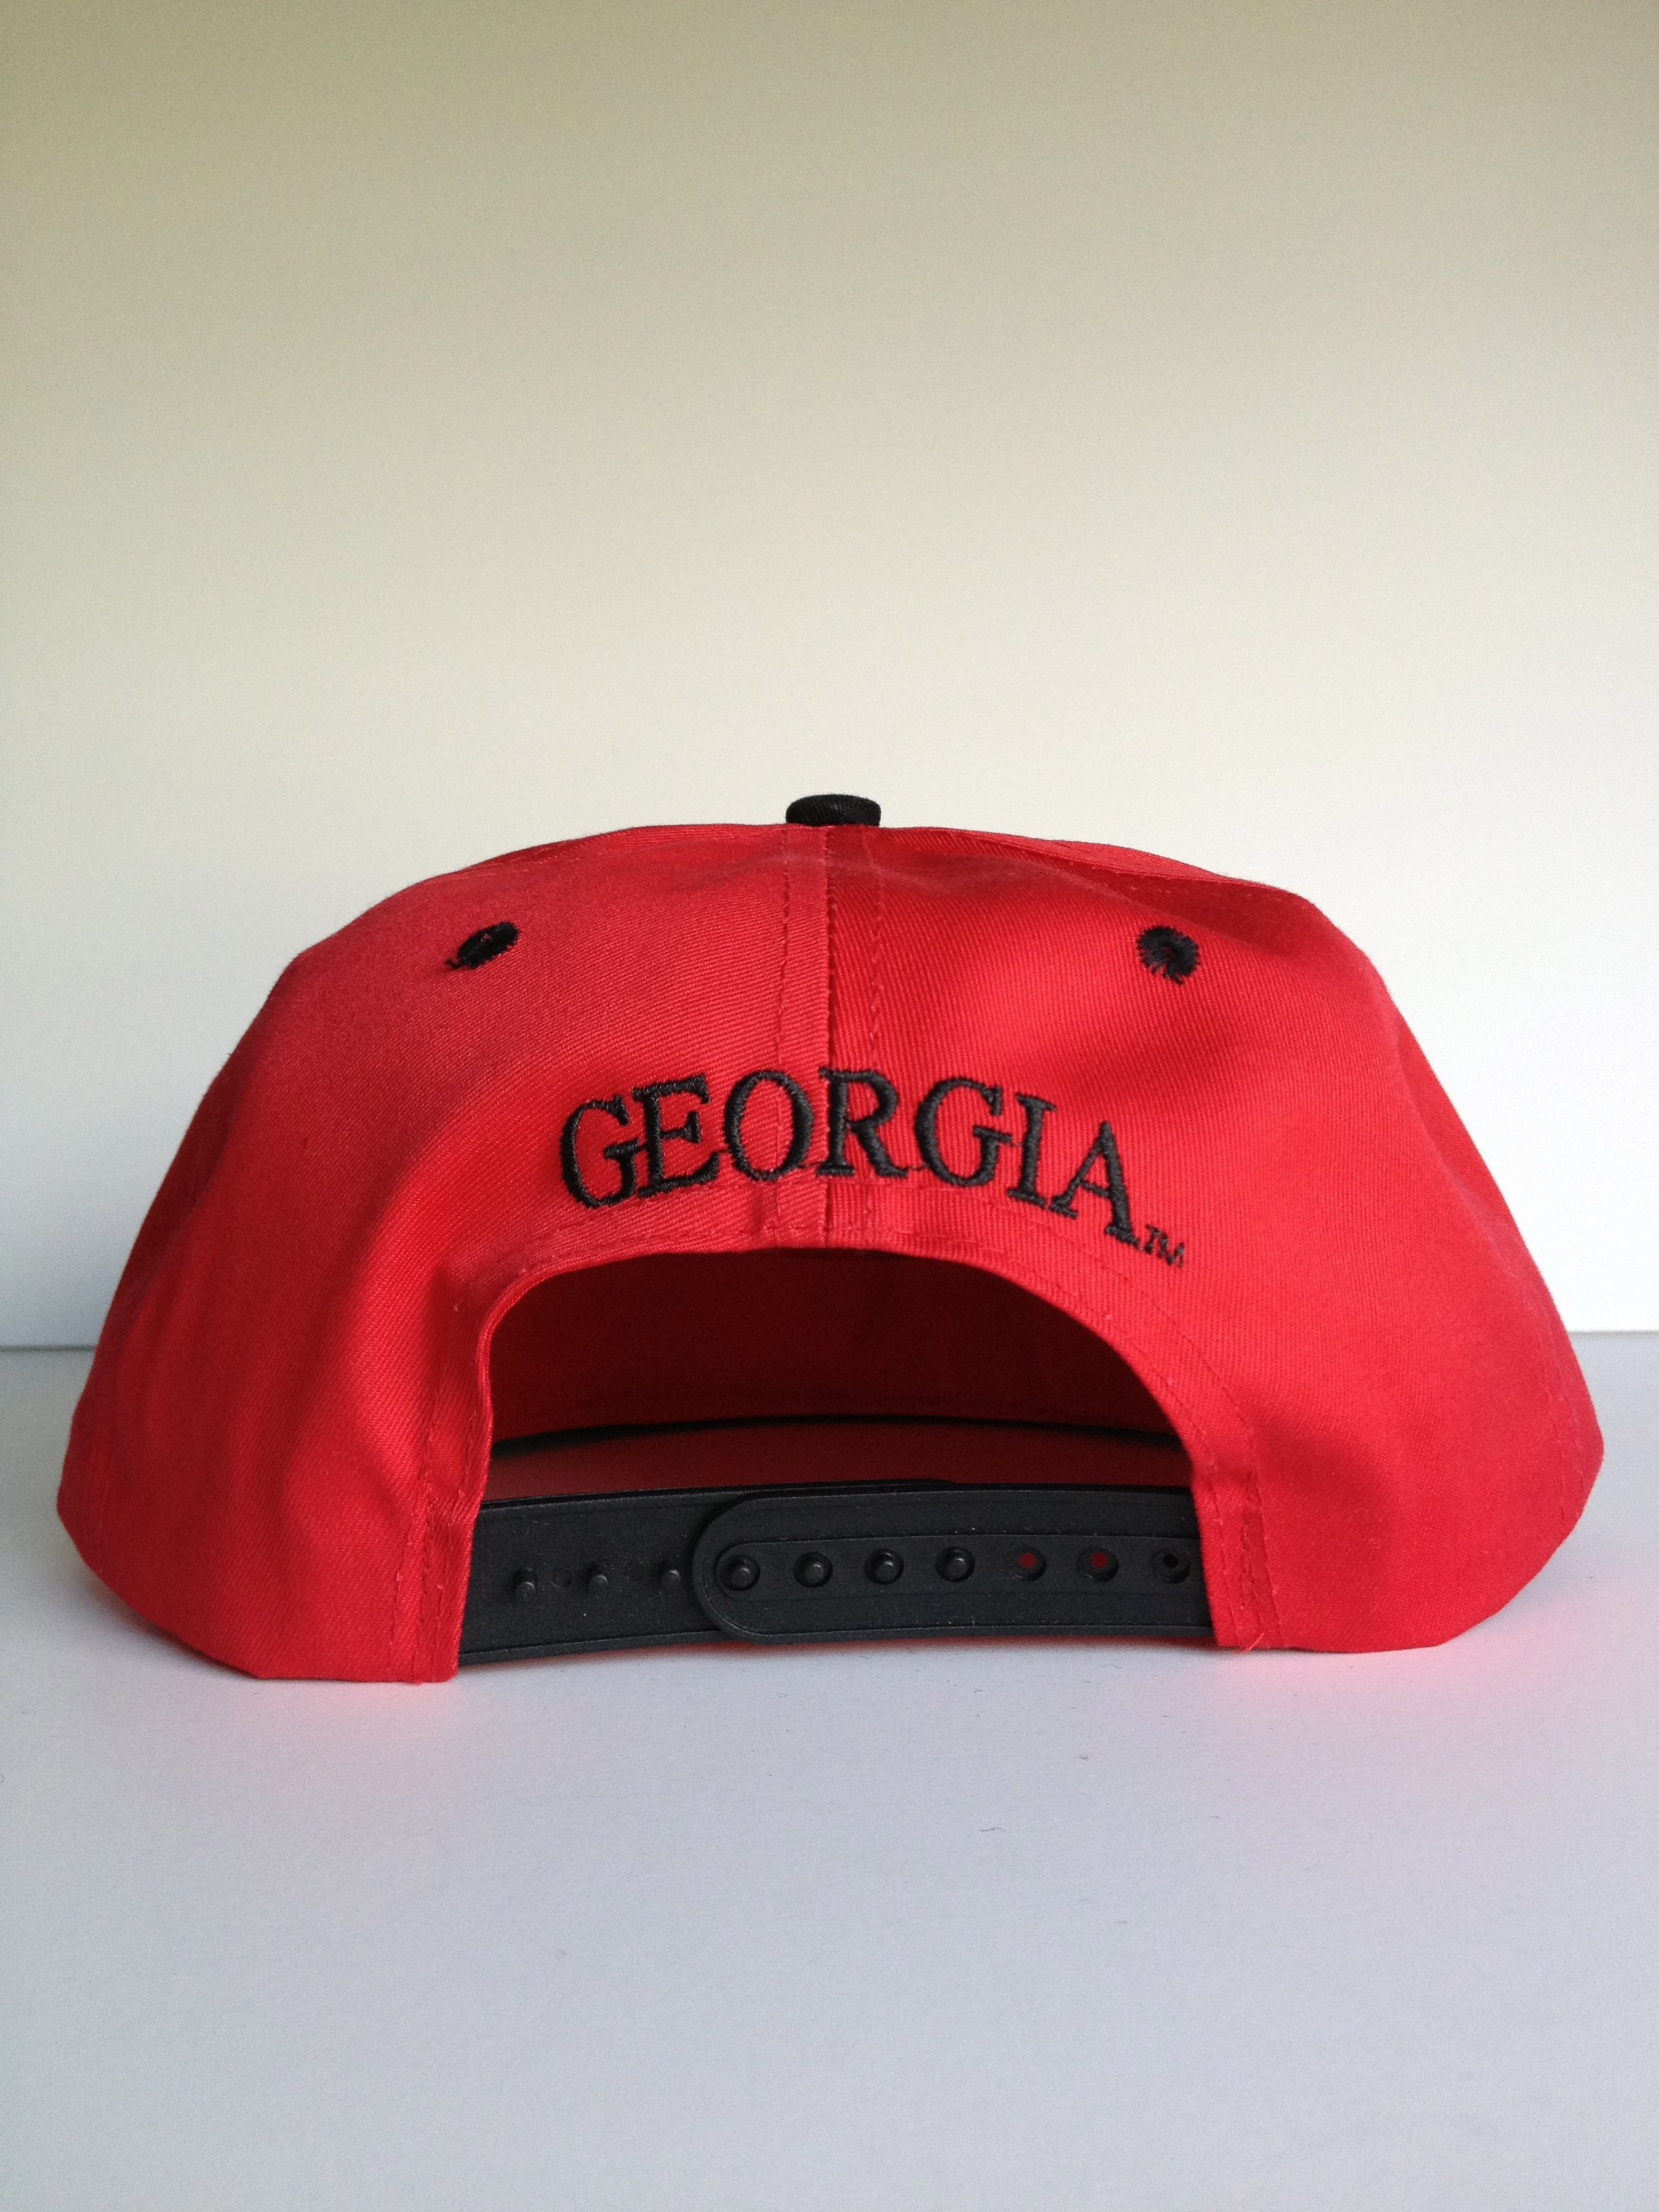 53e53f5bc65 ... Georgia Bulldogs Vintage Snap-back